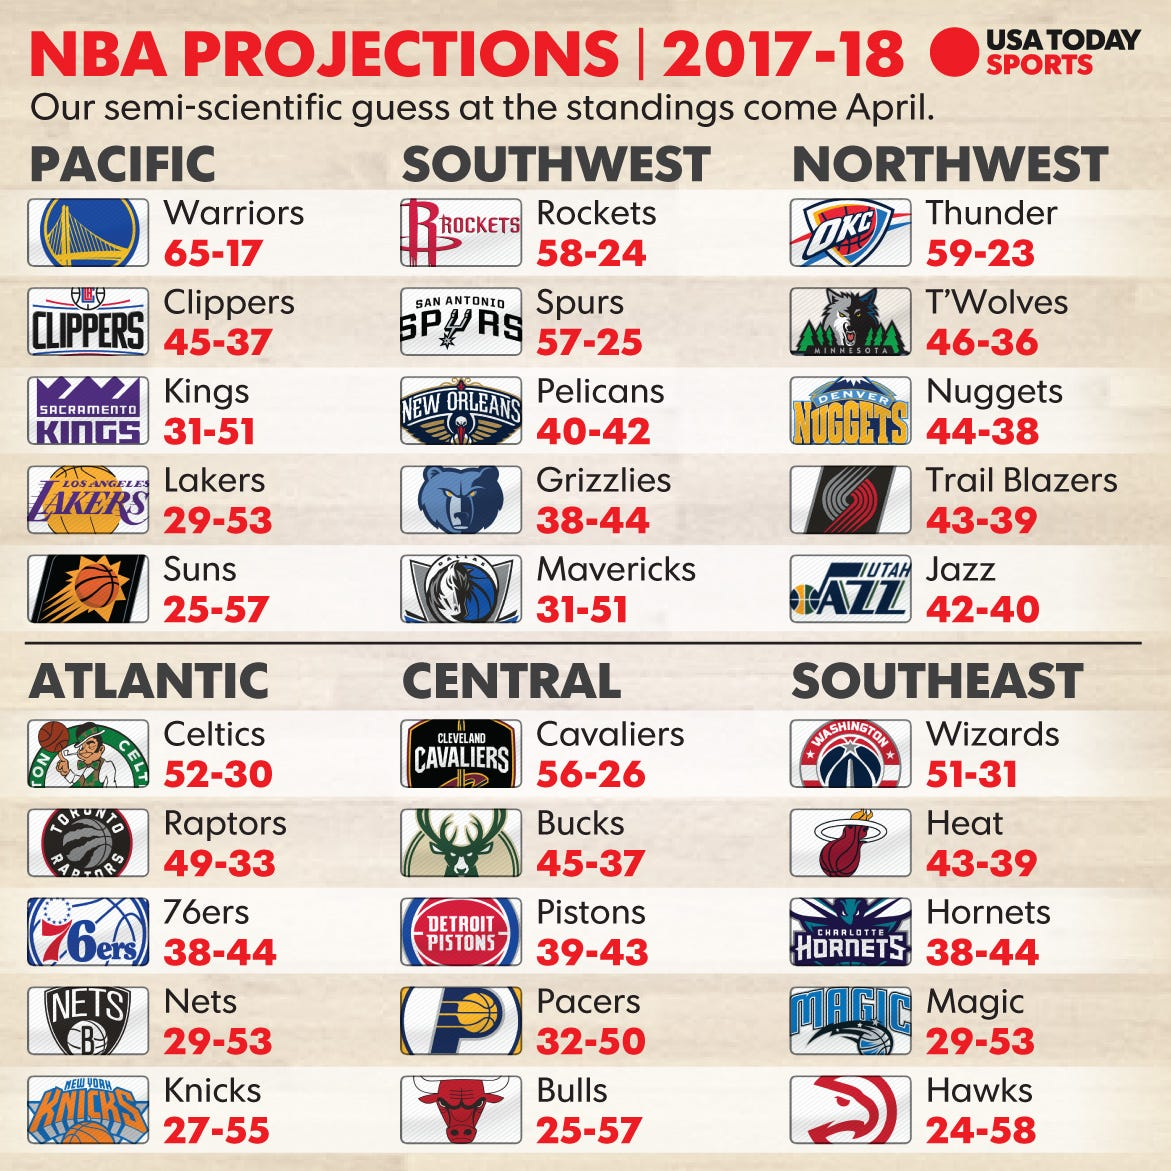 2017-18 NBA Season: Record Projections, Award Predictions